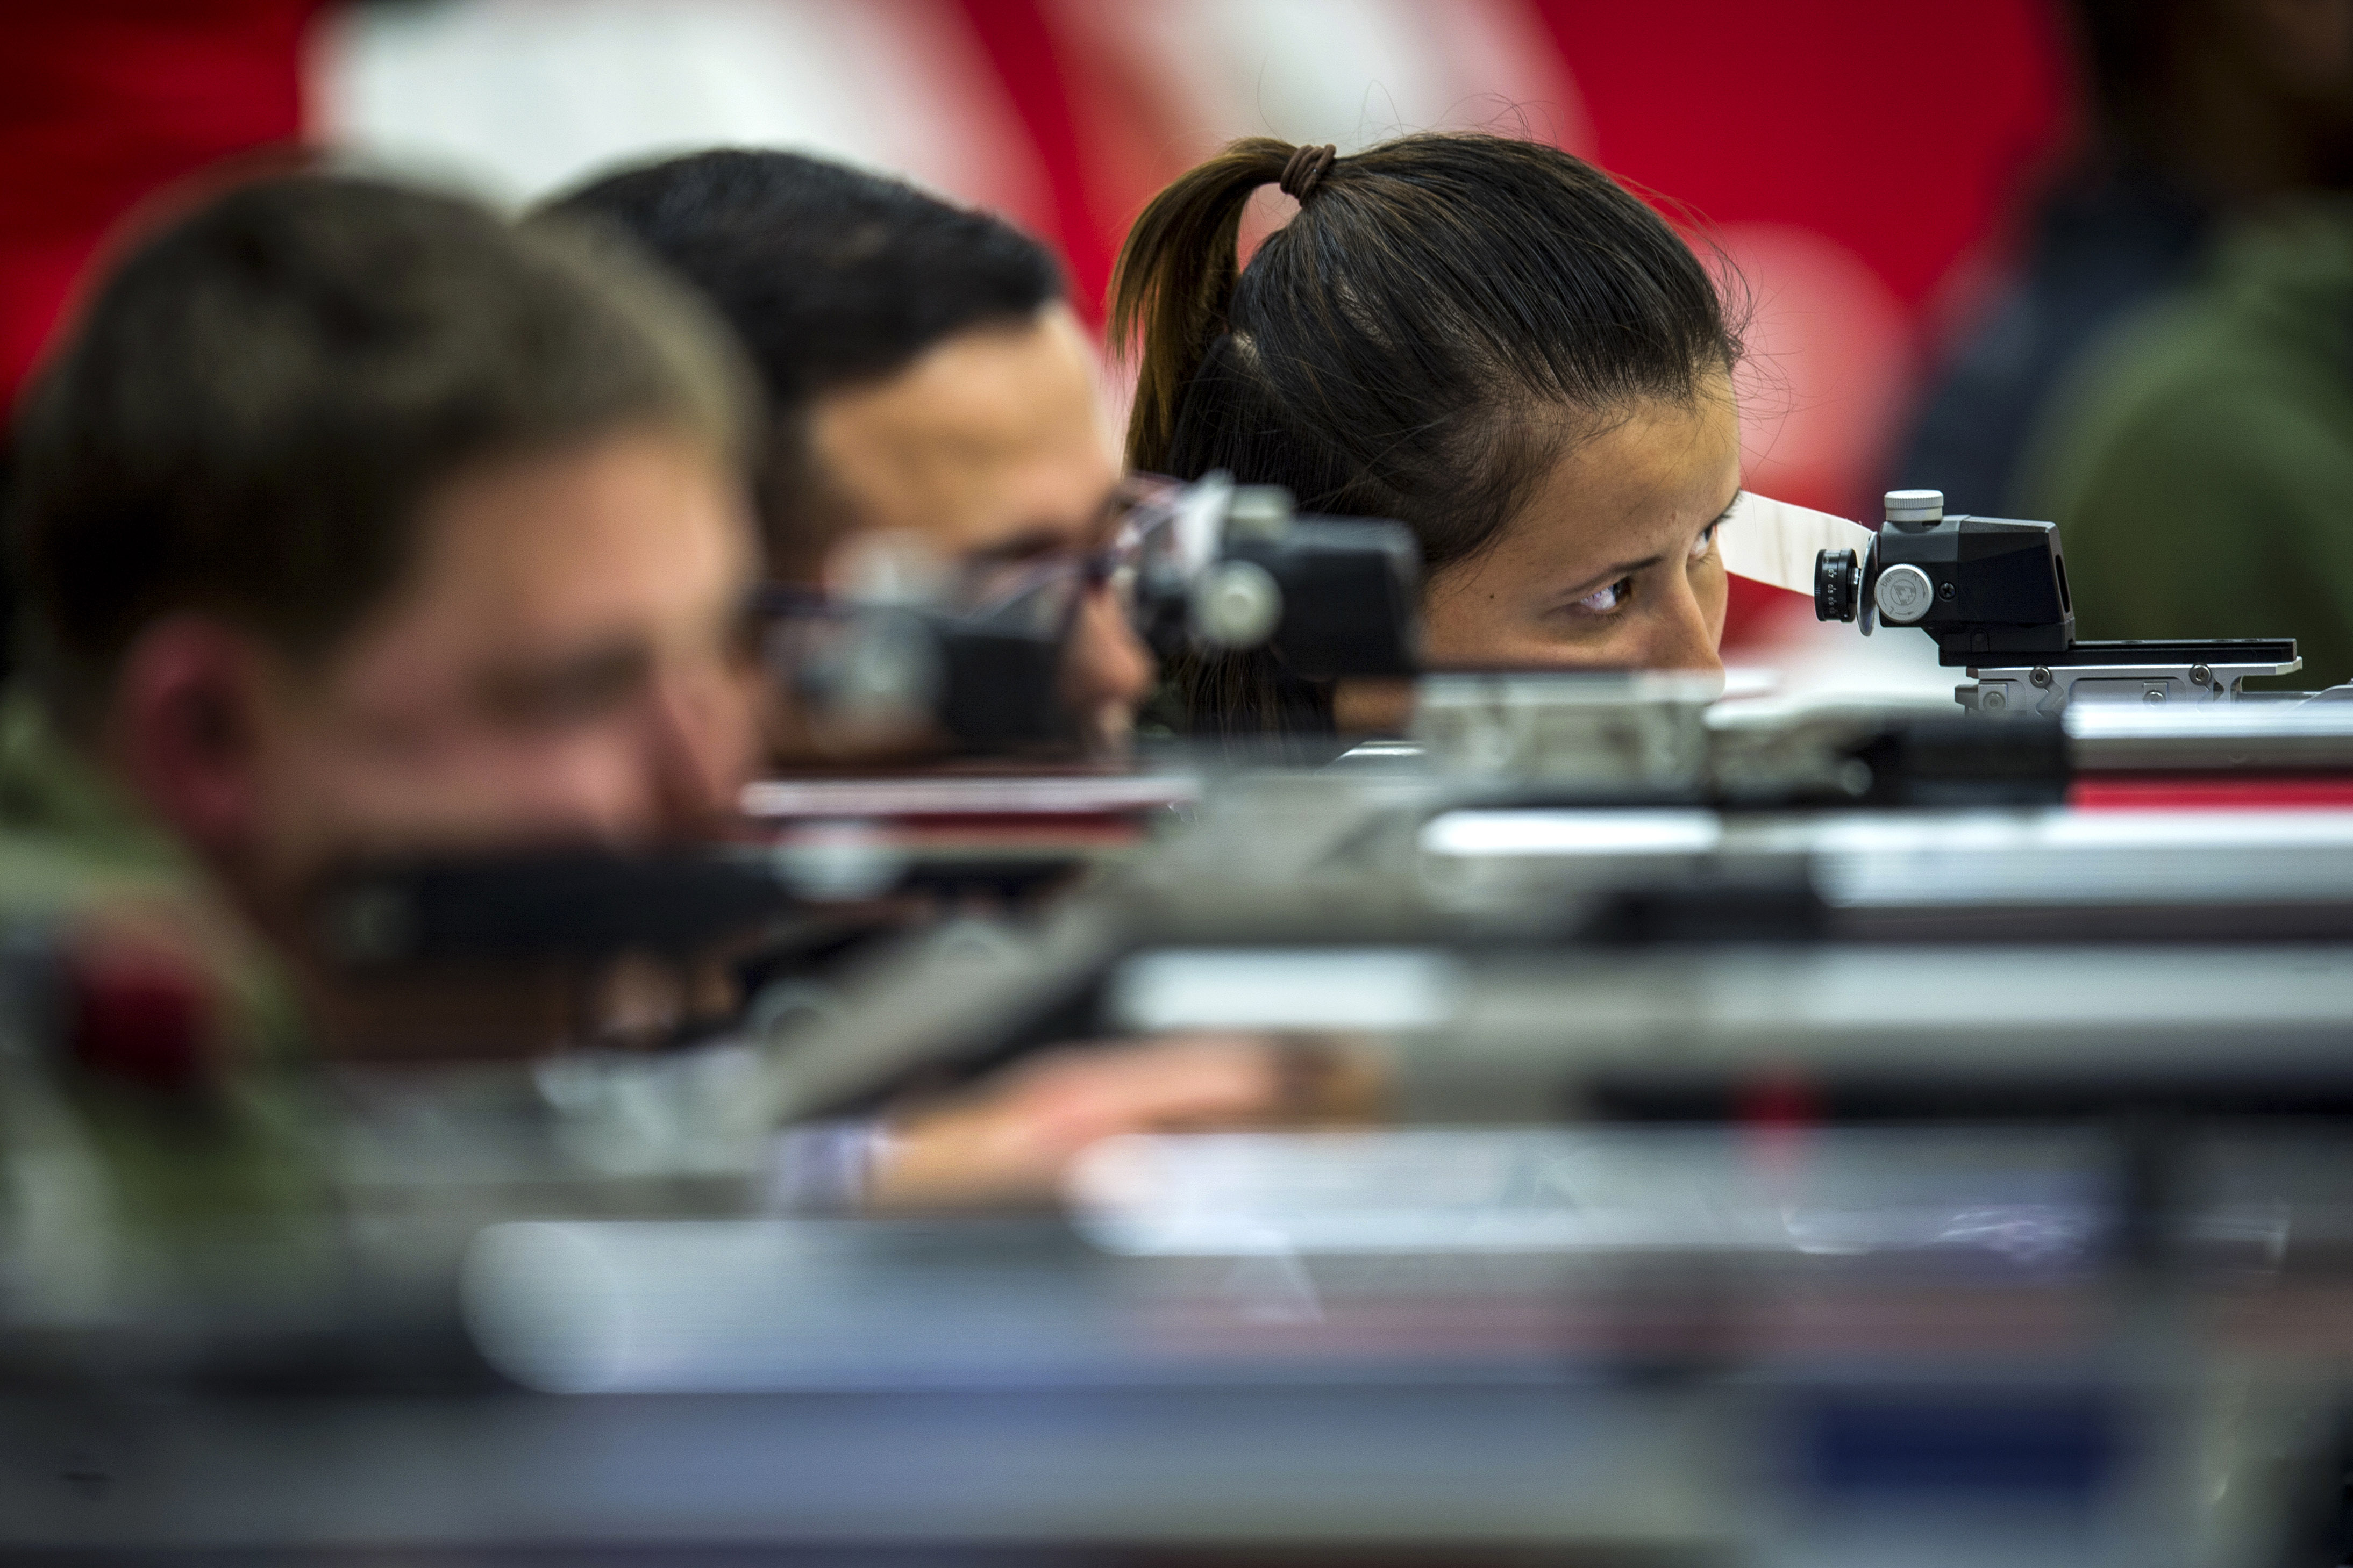 Marine Corps Lance Cpl. Faheemah Bostan-Ali looks down the sight of her air rifle during the 2018 Marine Corps Trials shooting competition at Marine Corps Base Camp Lejeune, N.C., March 23, 2018. The Marine Corps Trials promotes recovery and rehabilitation through adaptive sport participation and develops camaraderie among recovering service members (RSMs) and veterans. It serves as the primary venue to select Marine Corps participants for the DoD Warrior Games. (Sgt. Drew Tech/Marines)